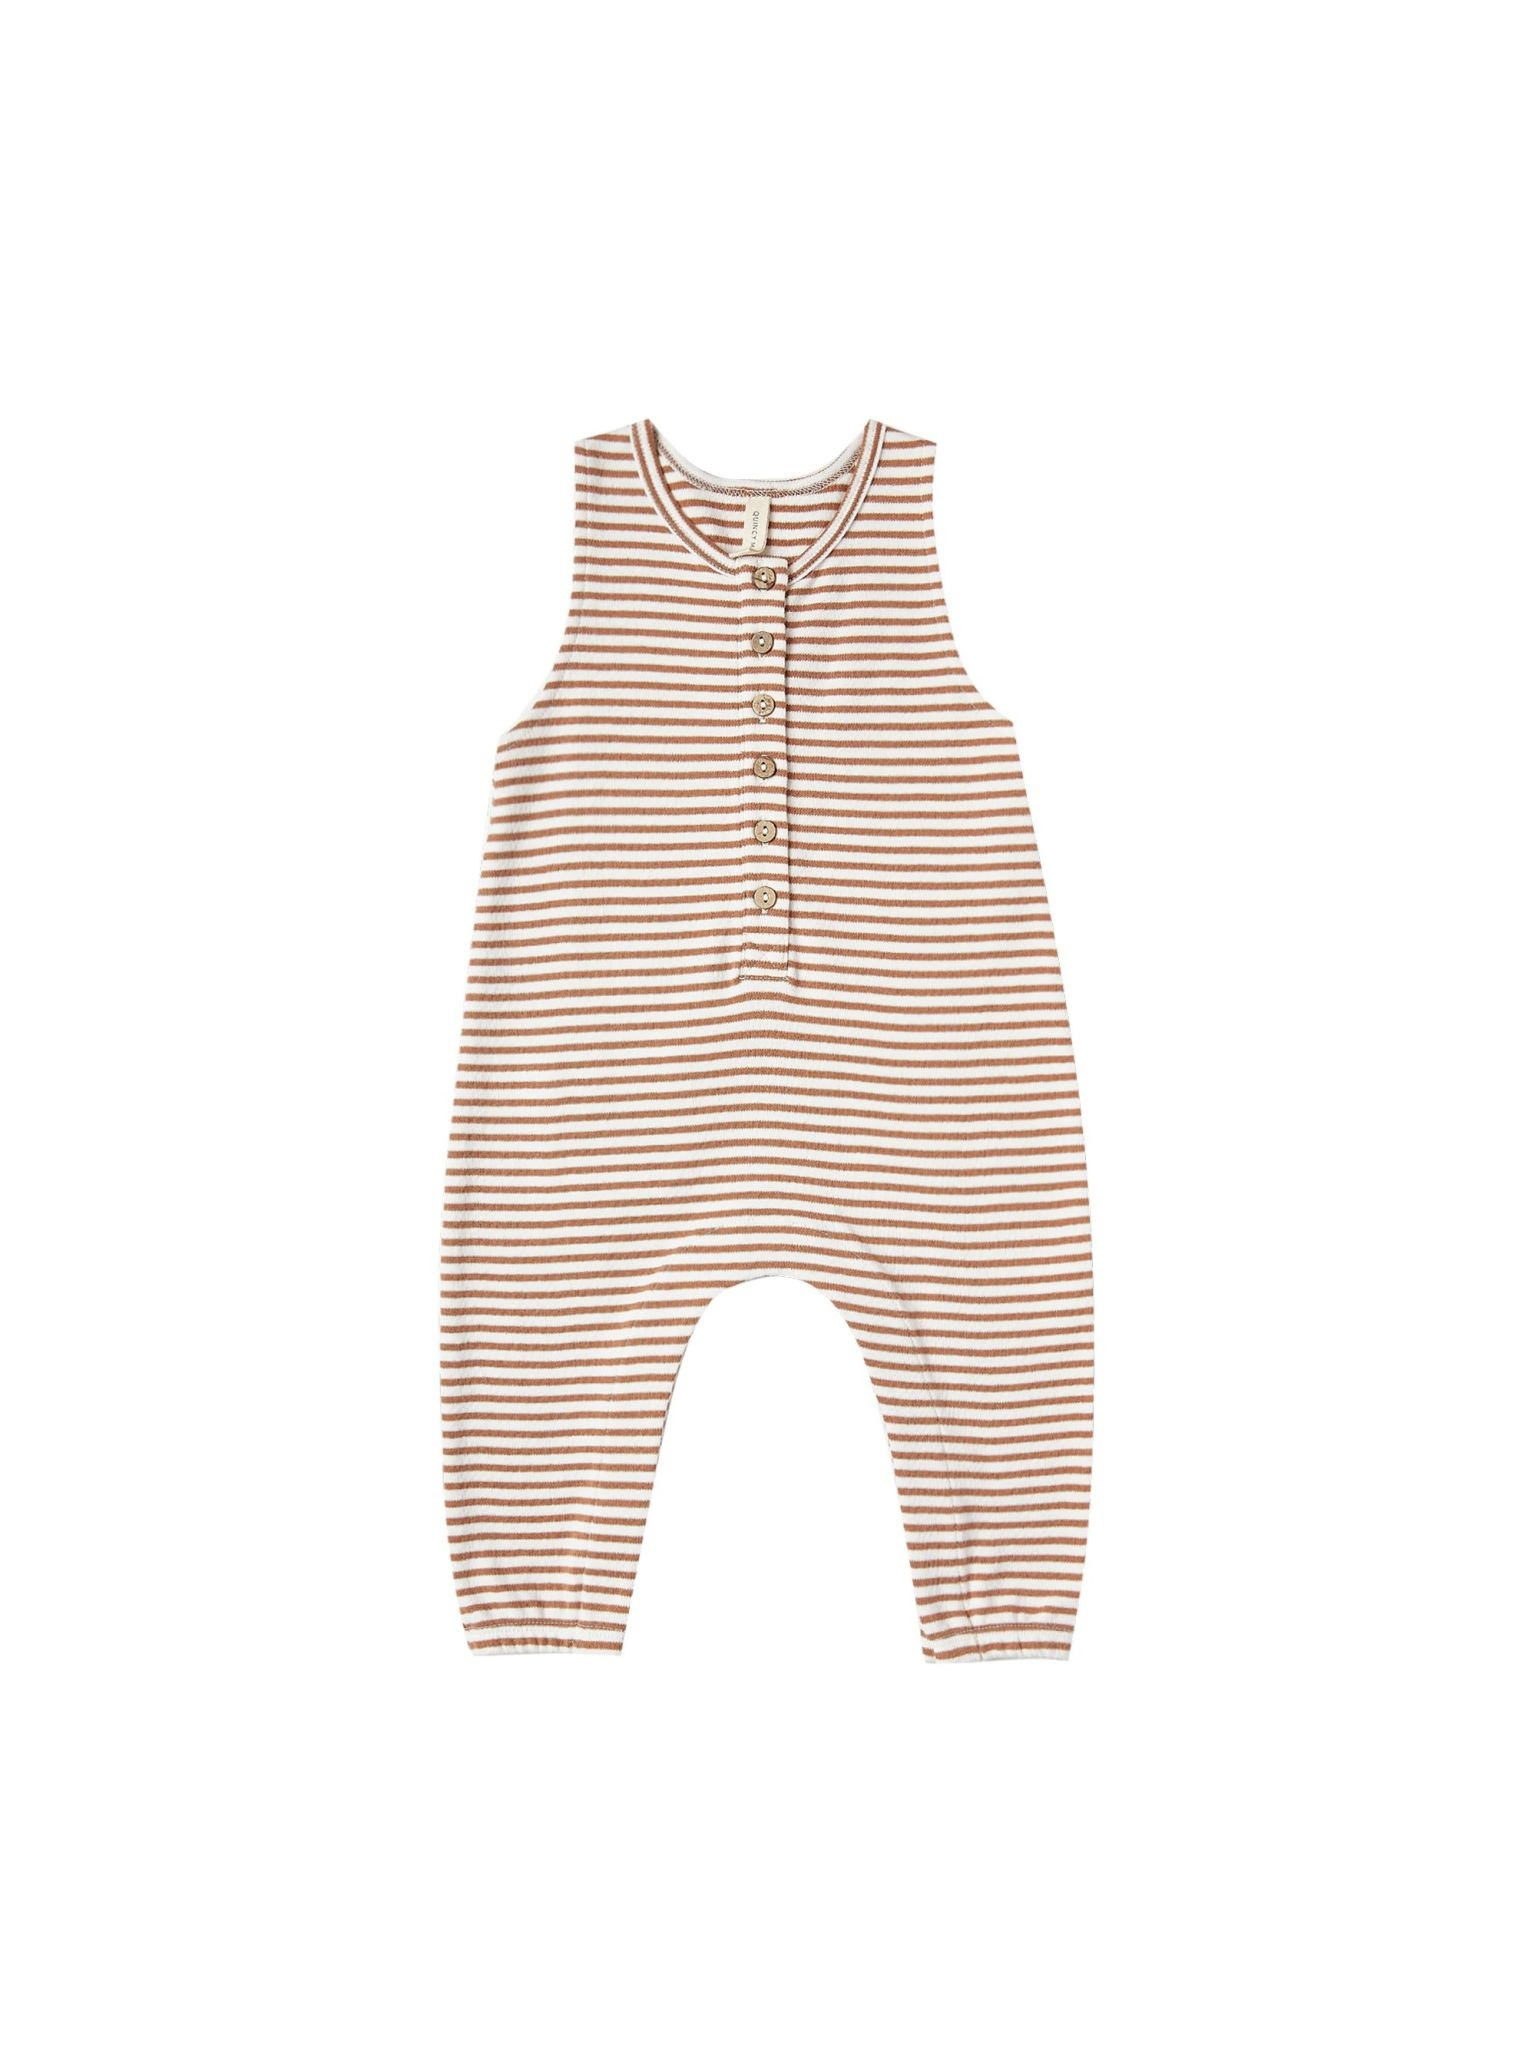 QUINCY MAE Organic Brushed Jersey Sleeveless Jumpsuit